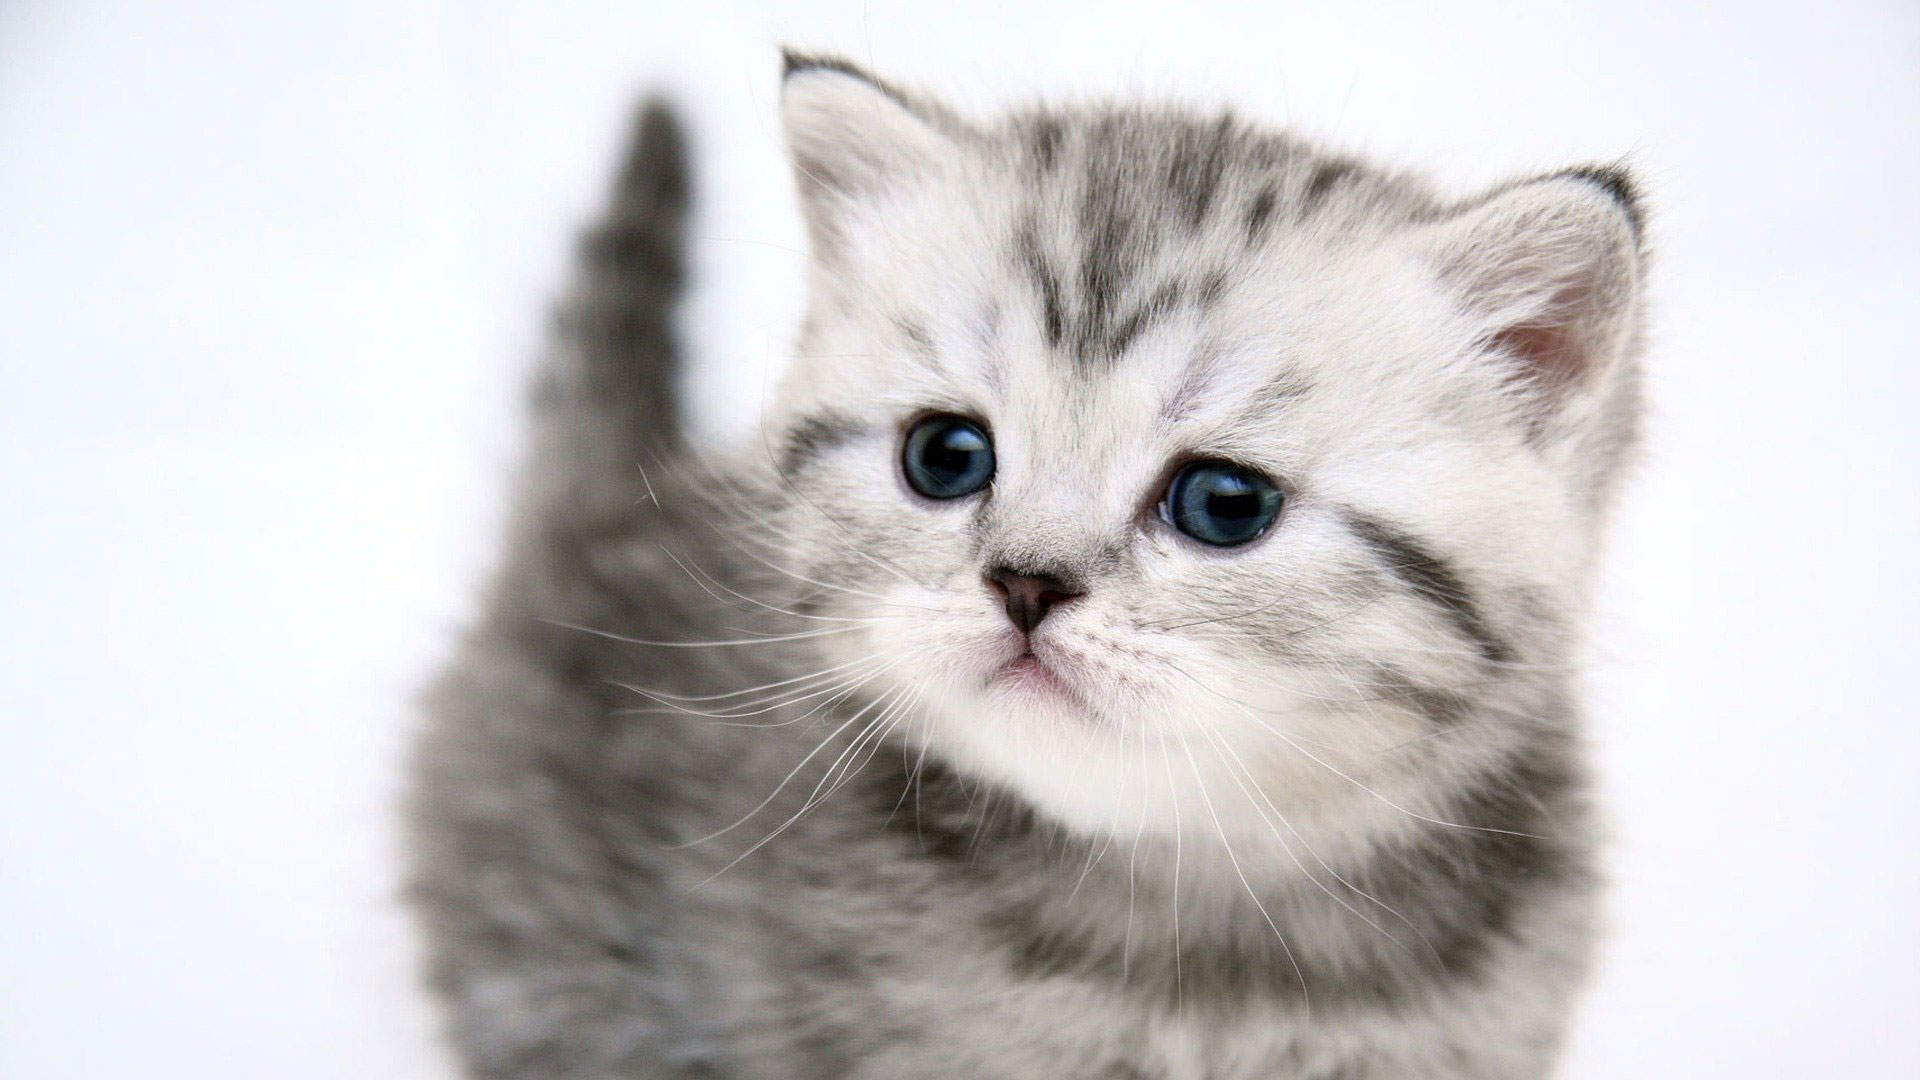 Wallpapers Of Cat